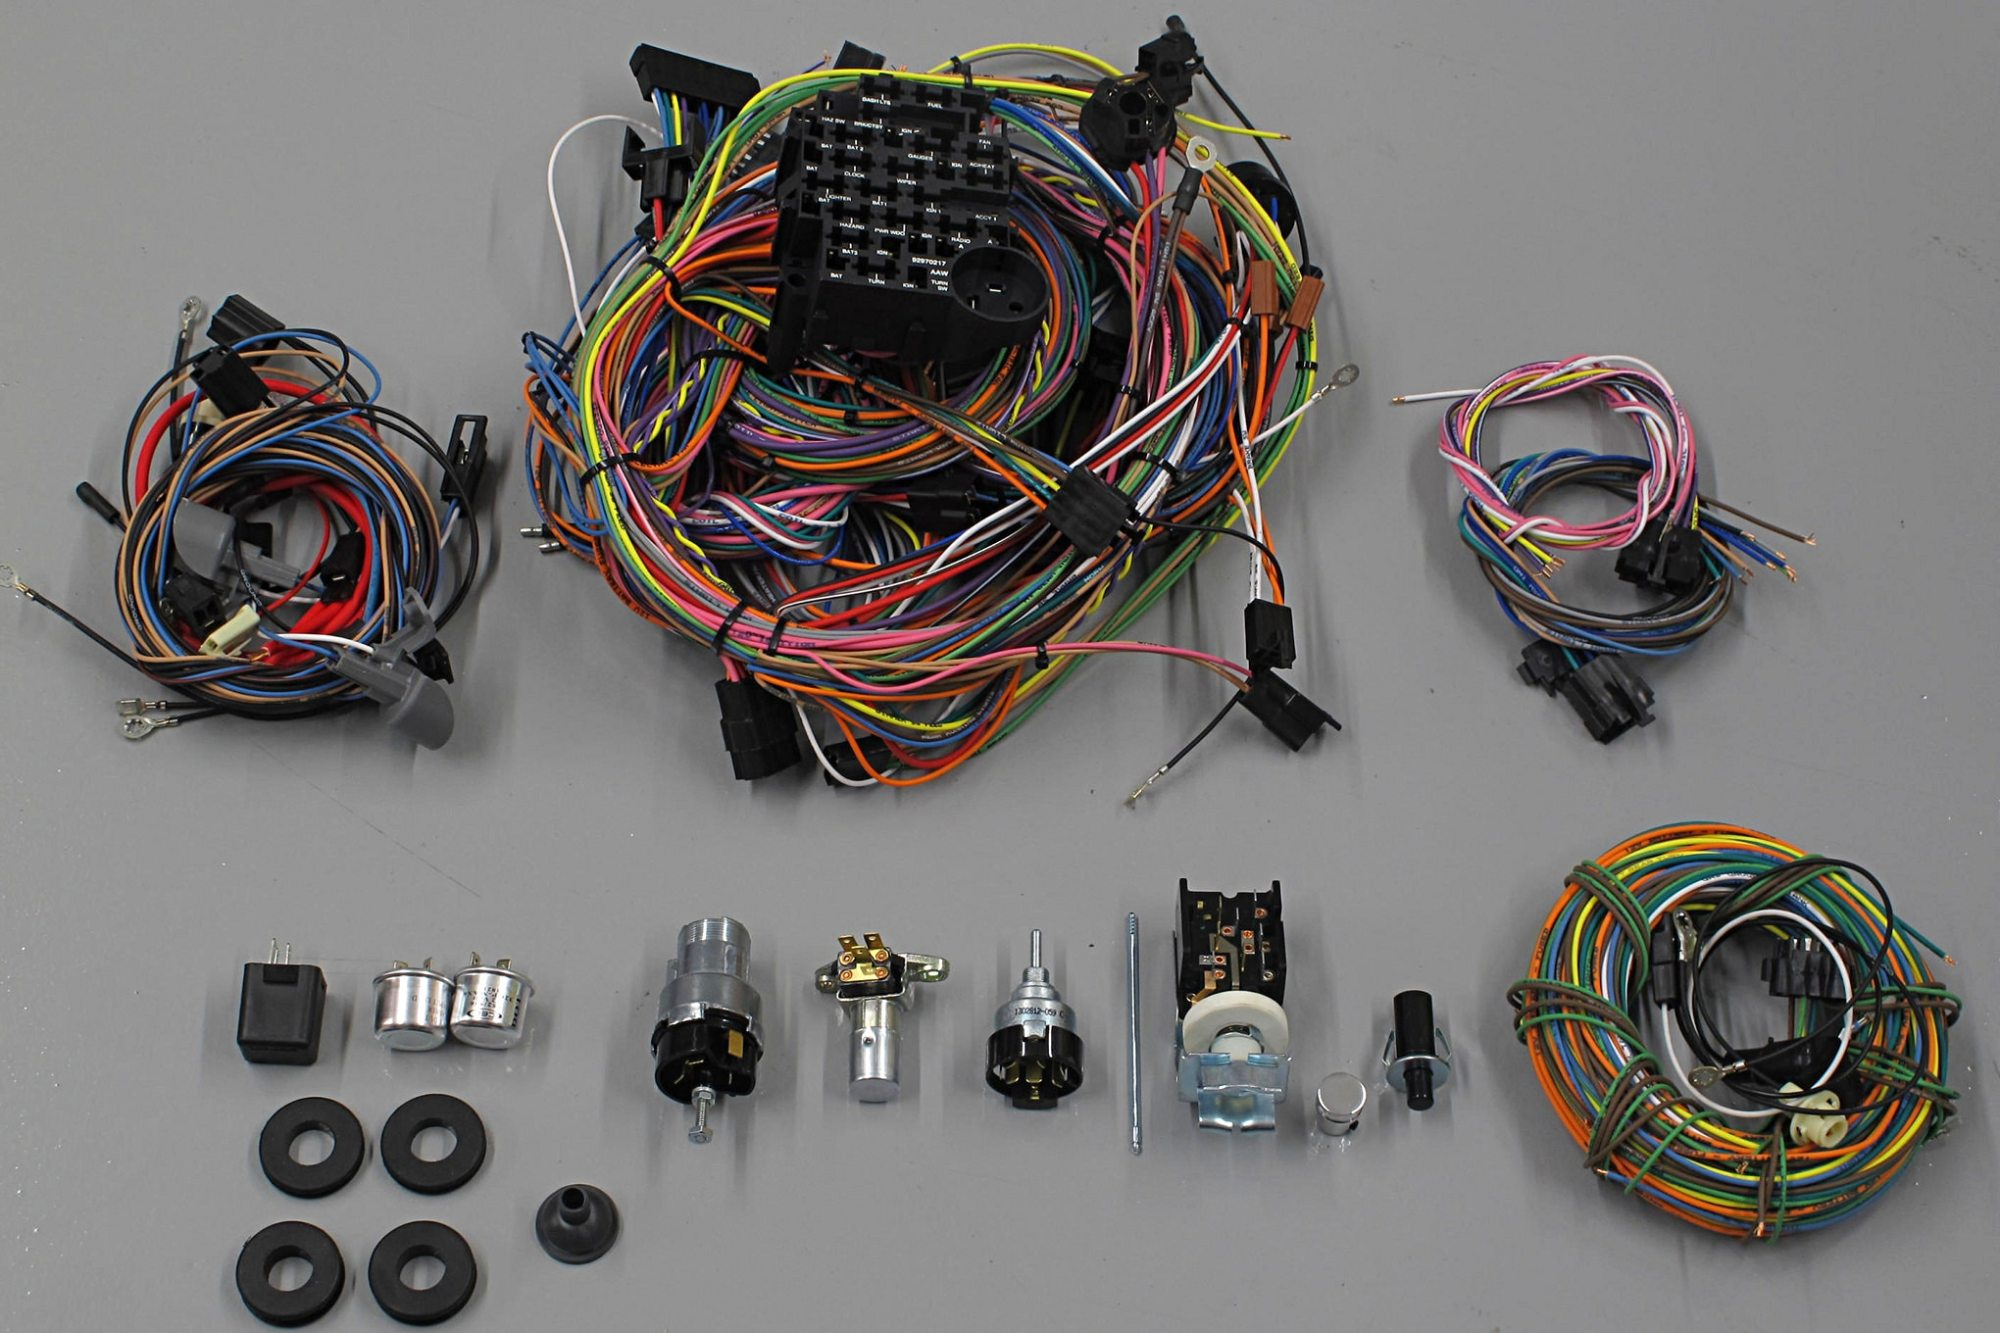 hight resolution of 001 wiring jpg